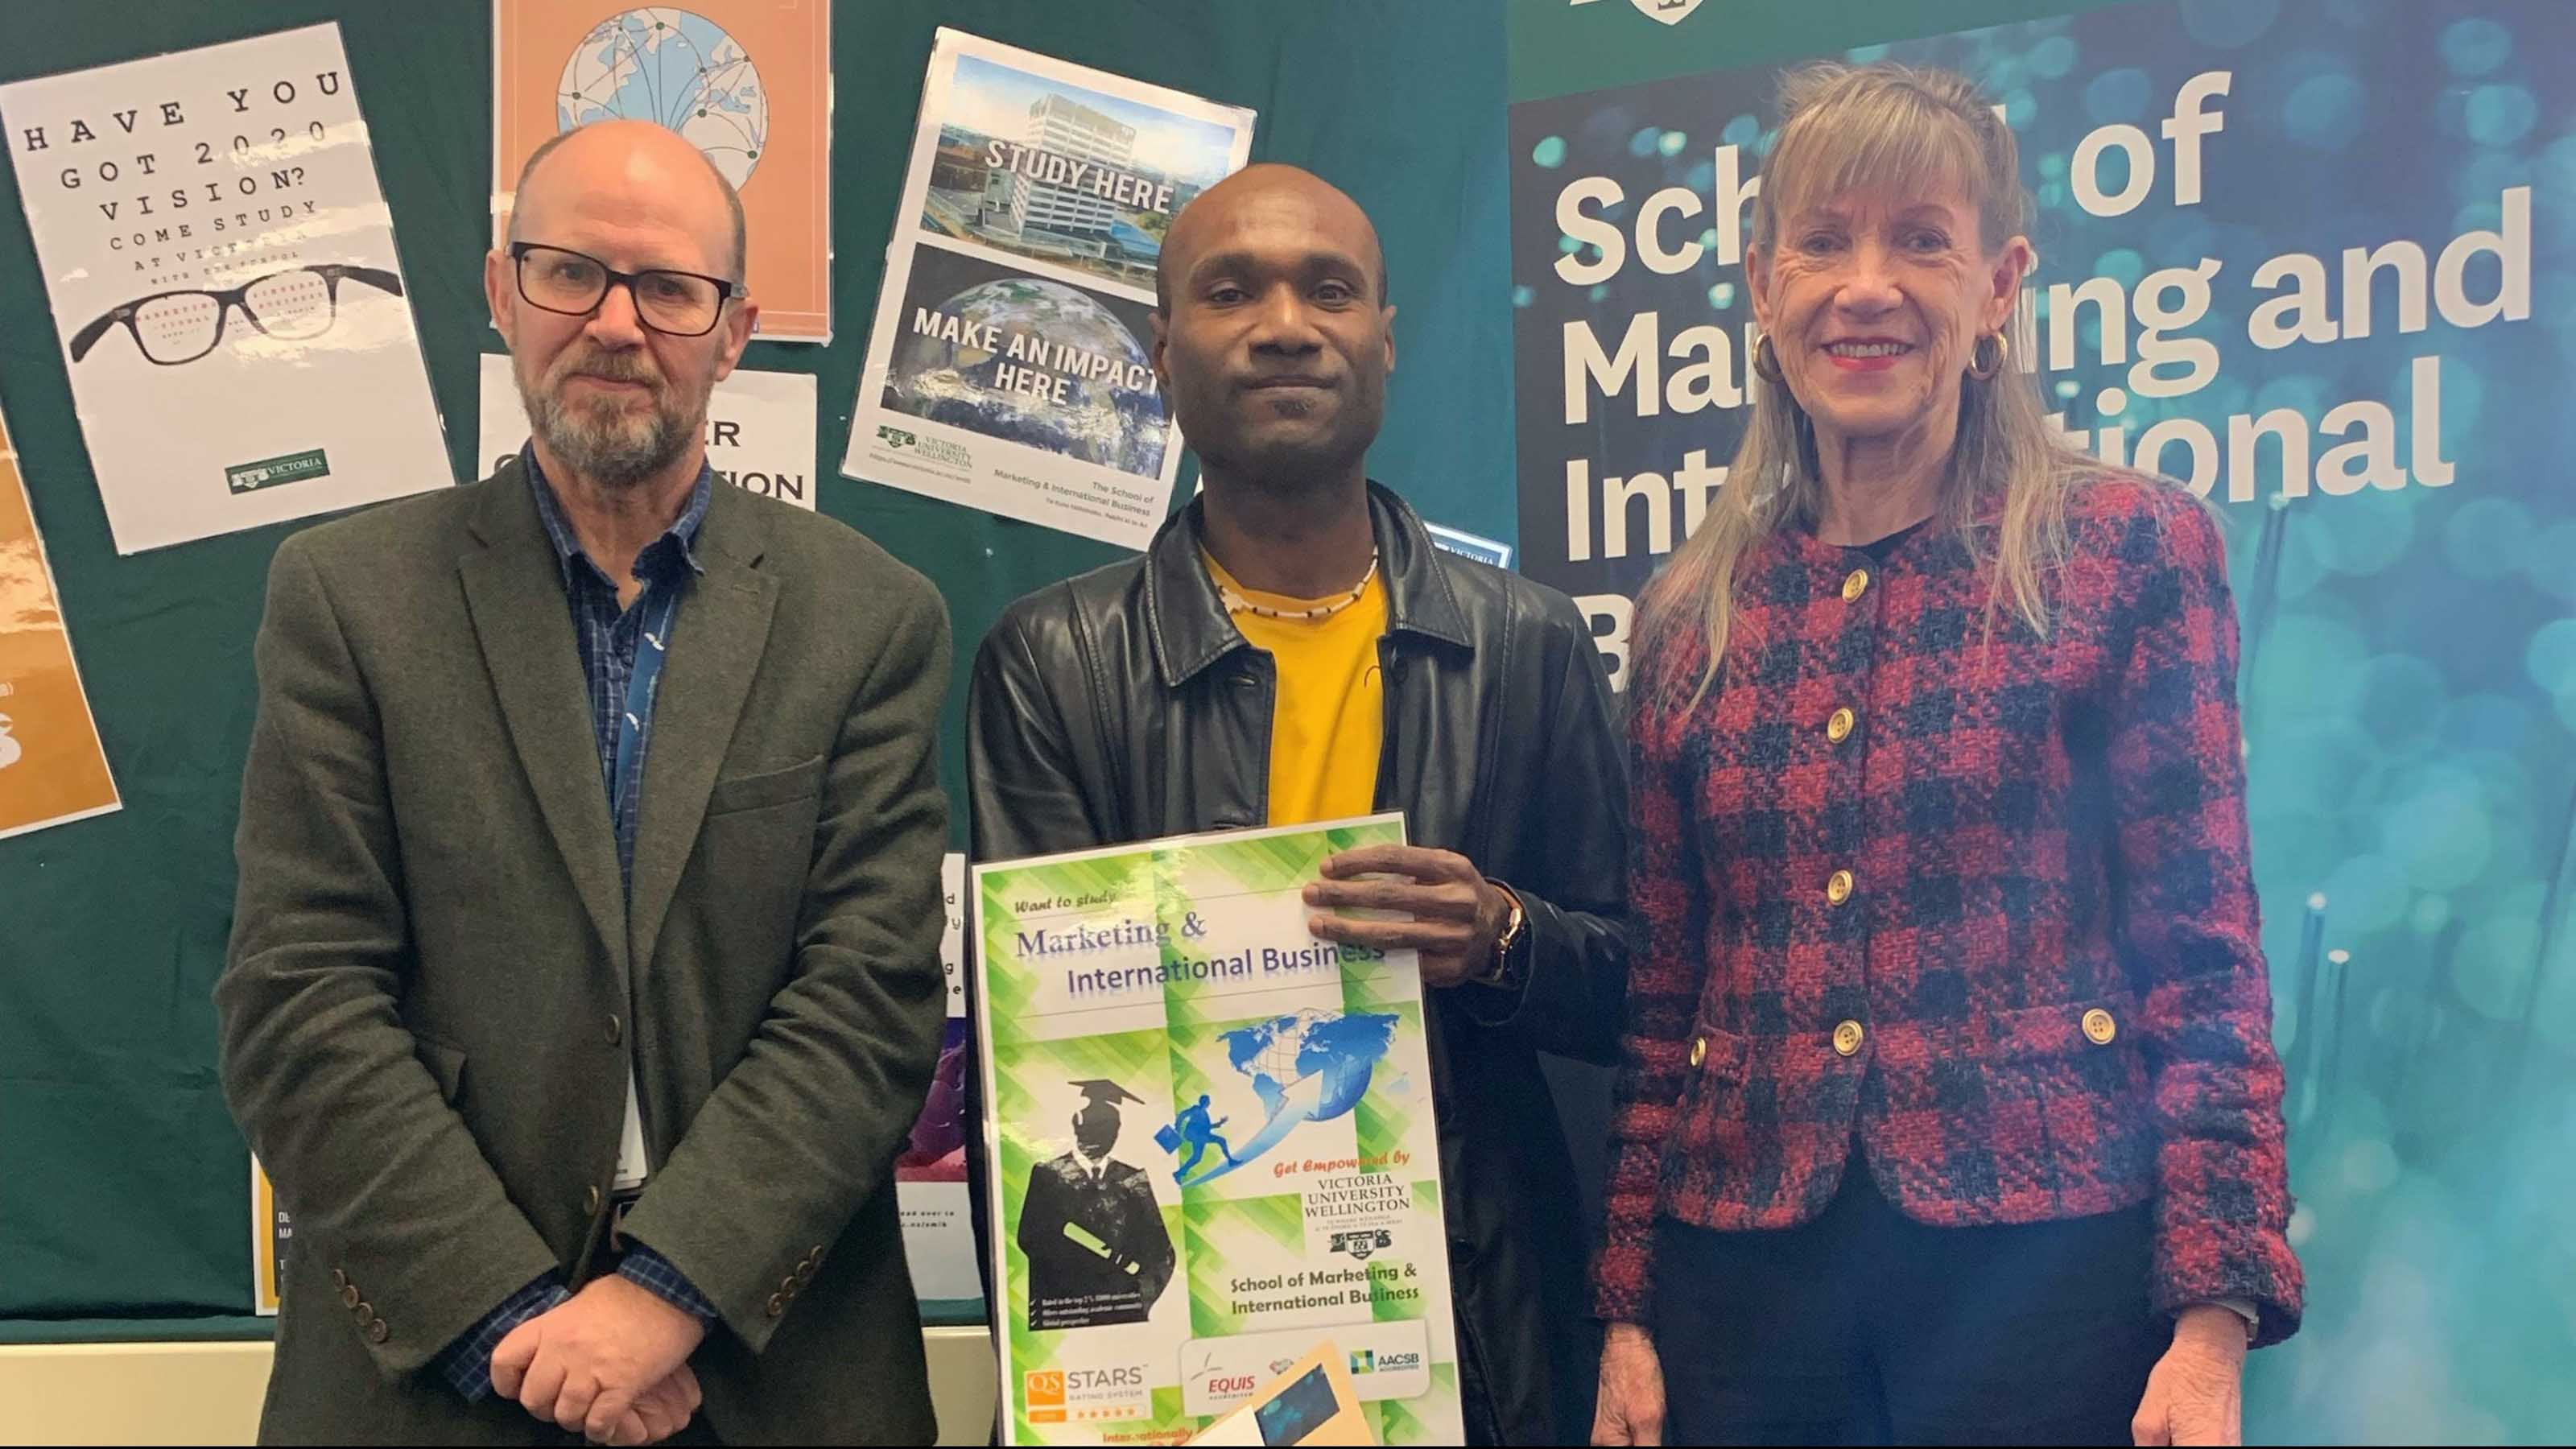 John Tulloch, Finalist Baptist Molai, and Val Hopper standing in front of the winning posters